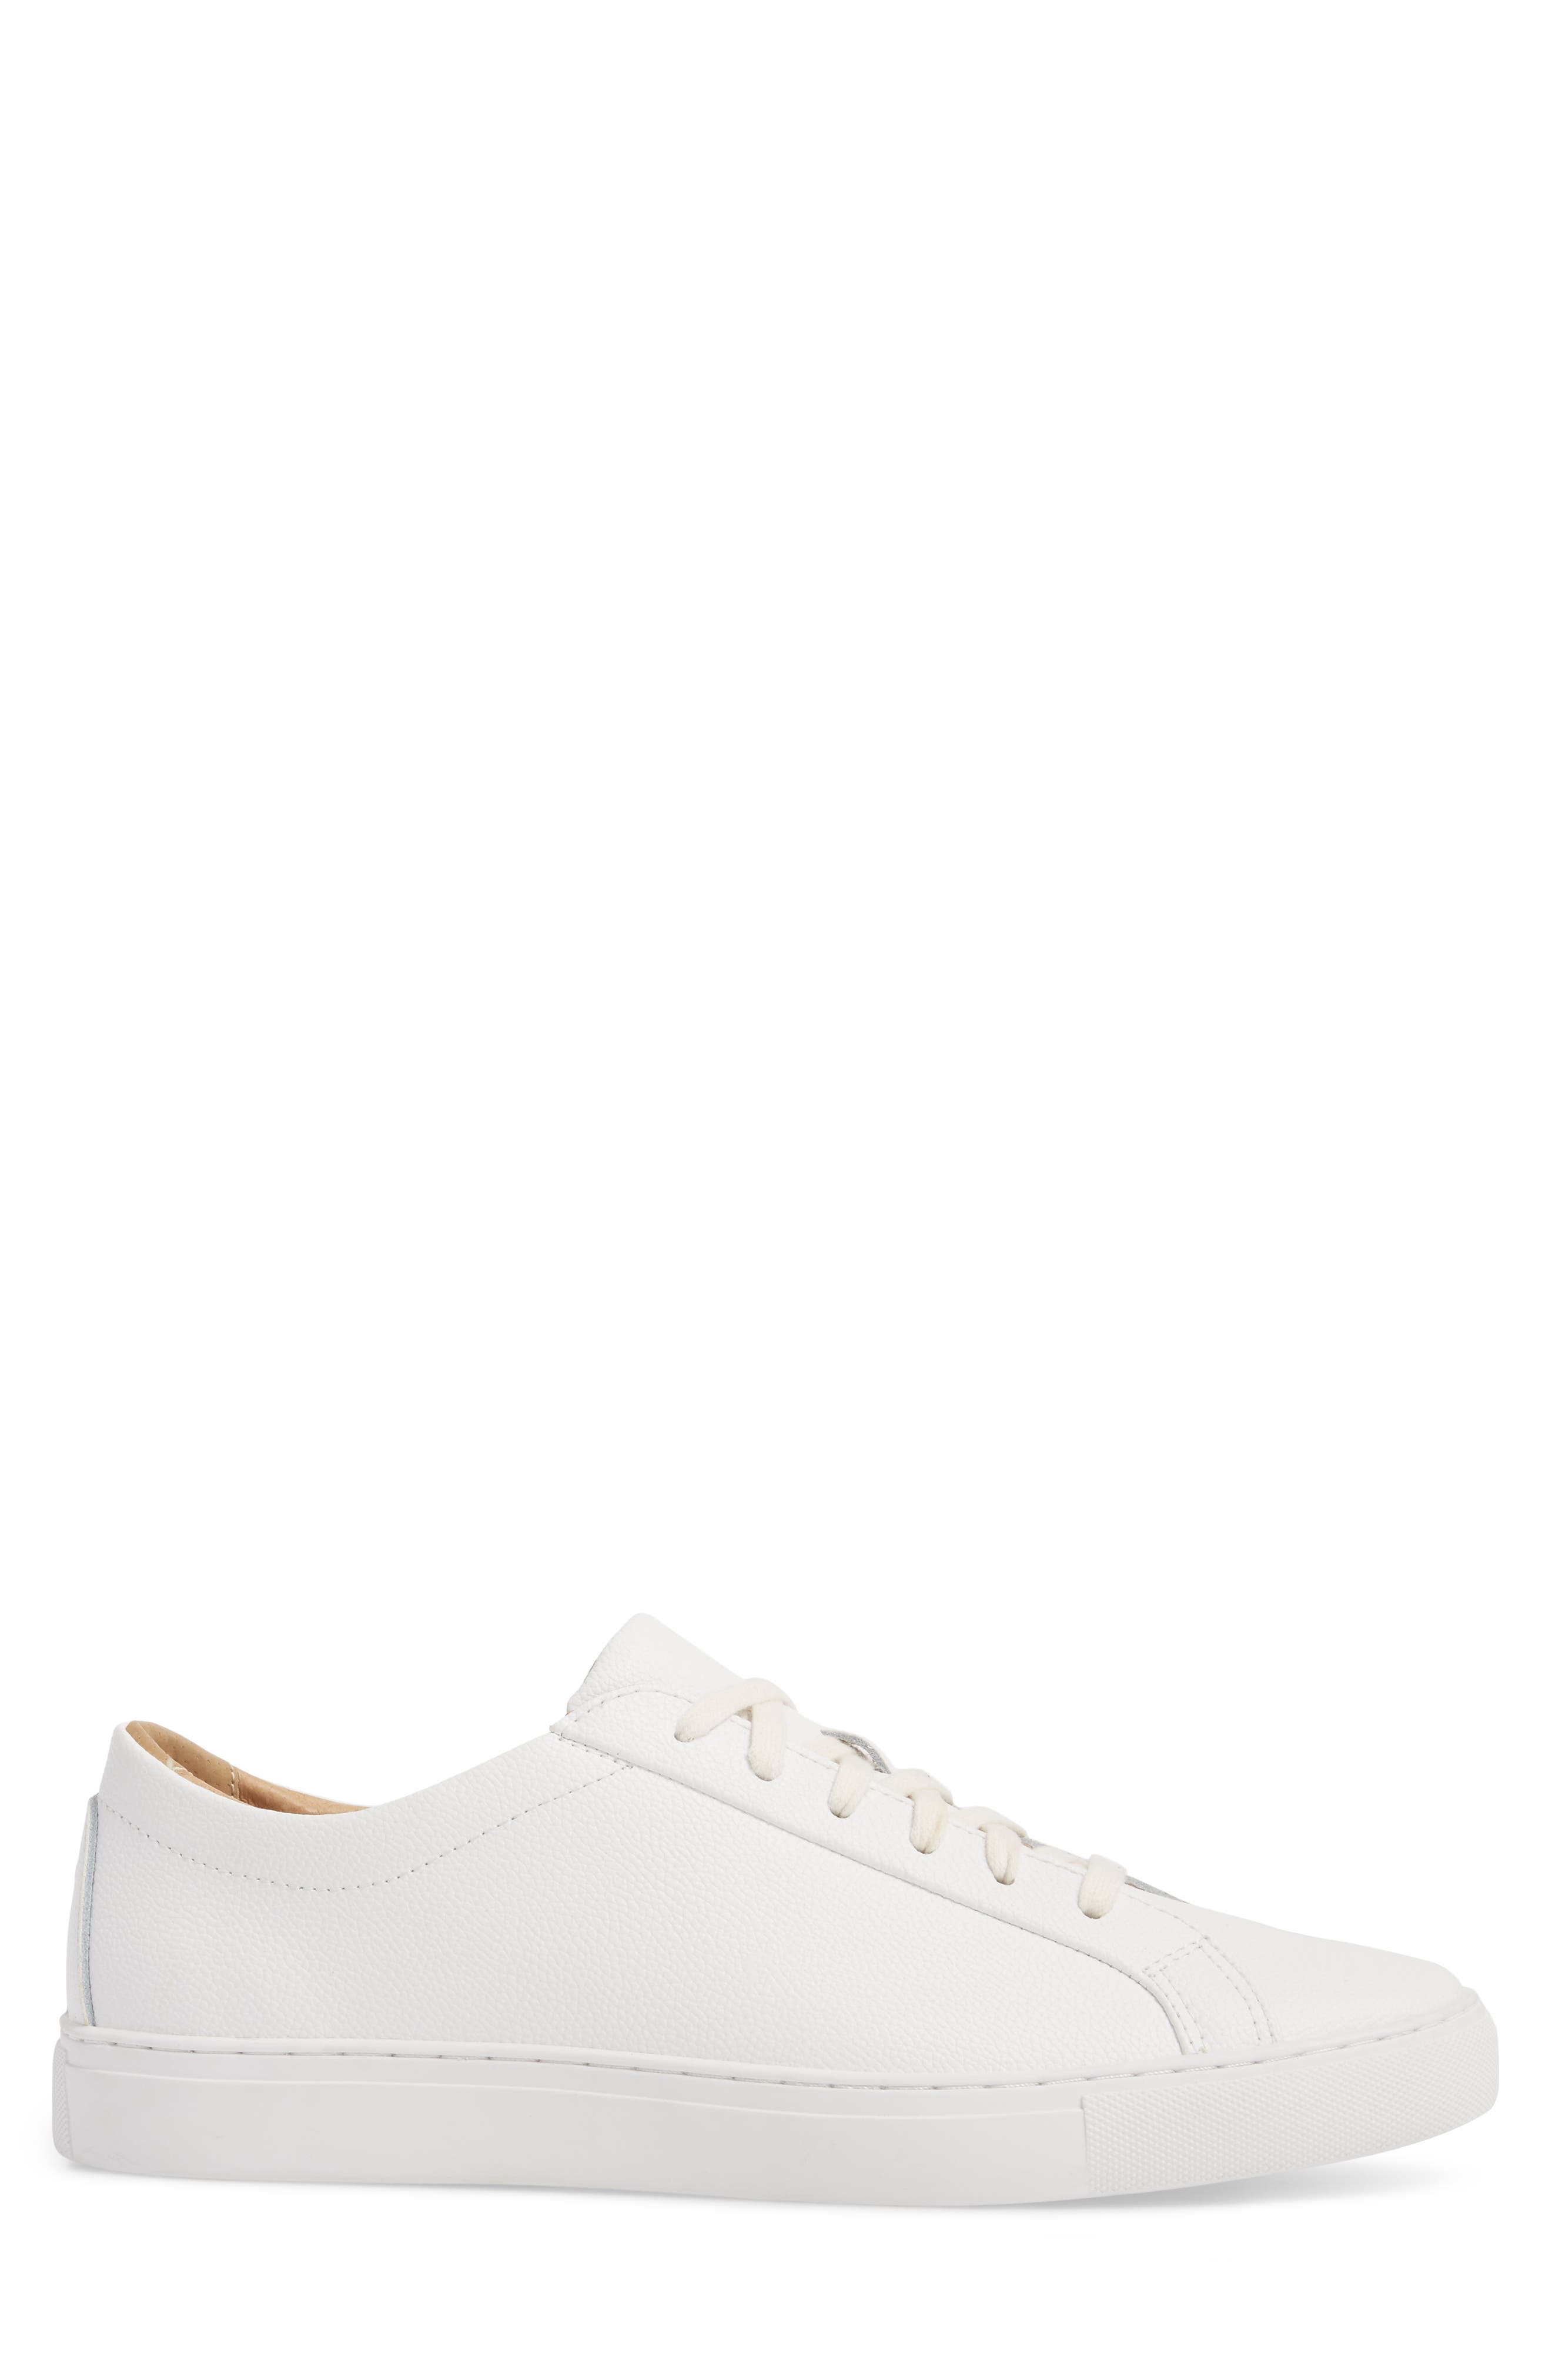 Kennedy Low Top Sneaker,                             Alternate thumbnail 3, color,                             White Leather